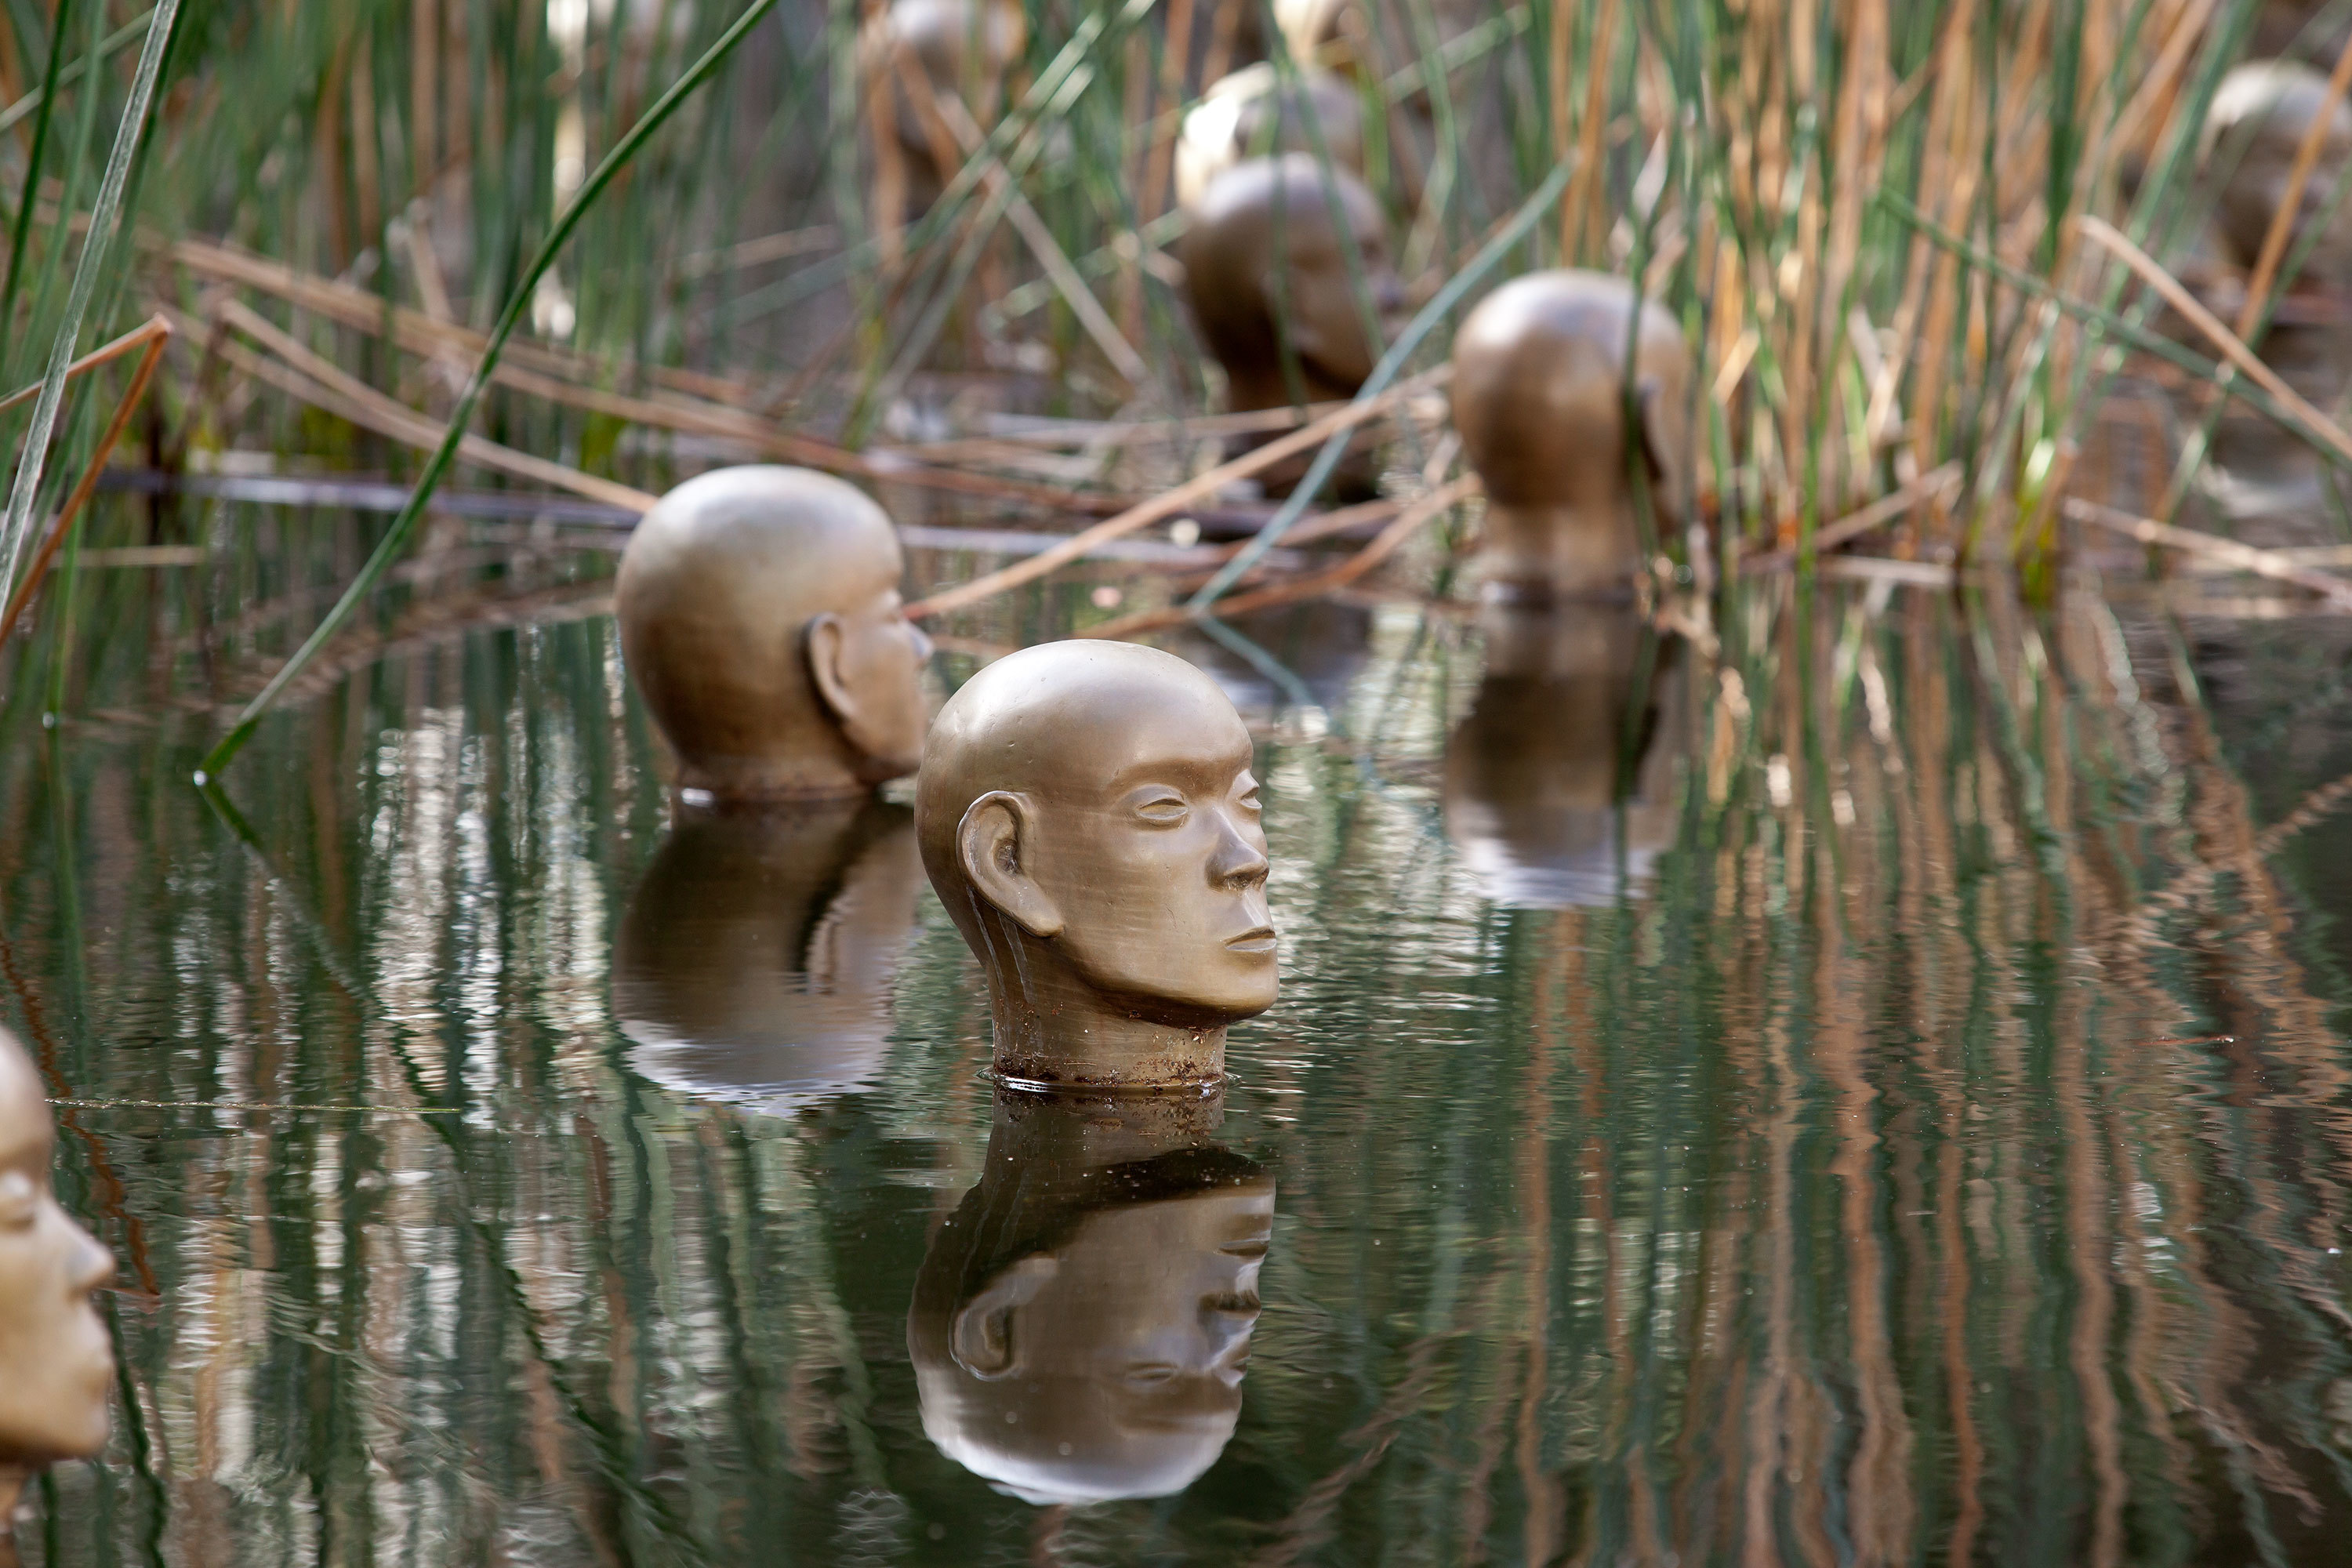 Bronze heads poke out from a pond amongst the rushes